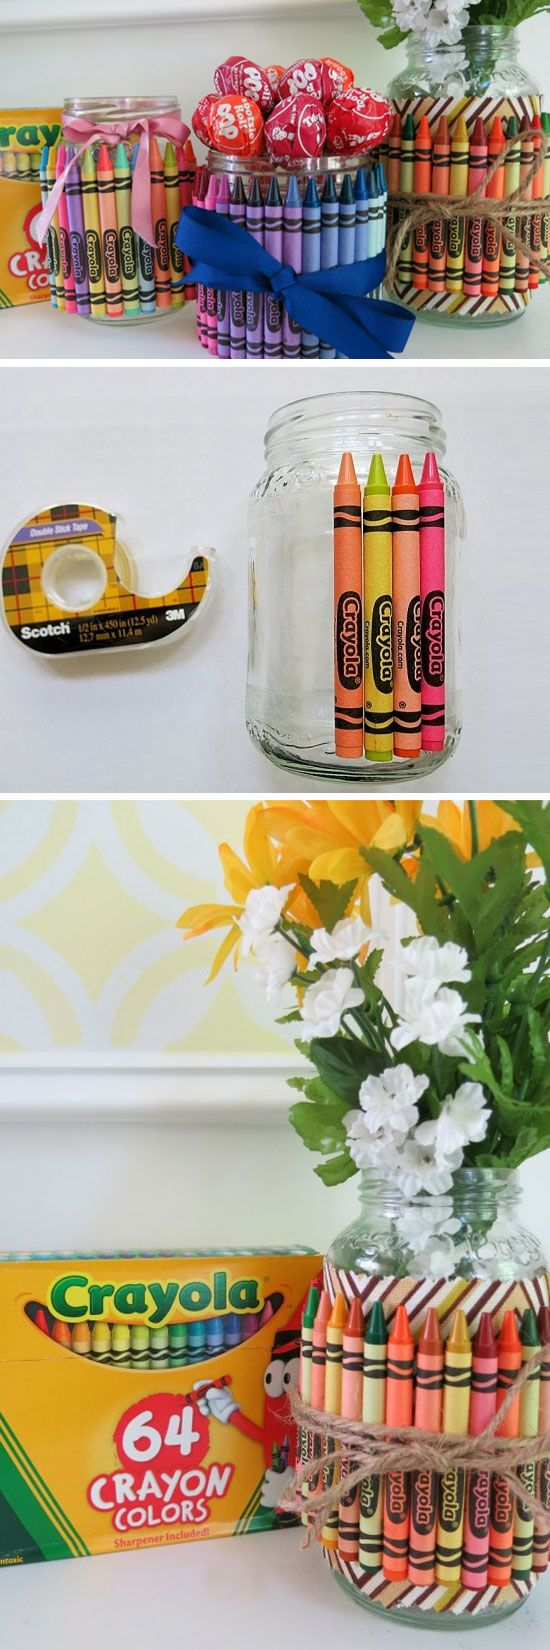 Teacher Gifts : Crayon Container | DIY Christmas Gifts for Teachers ...